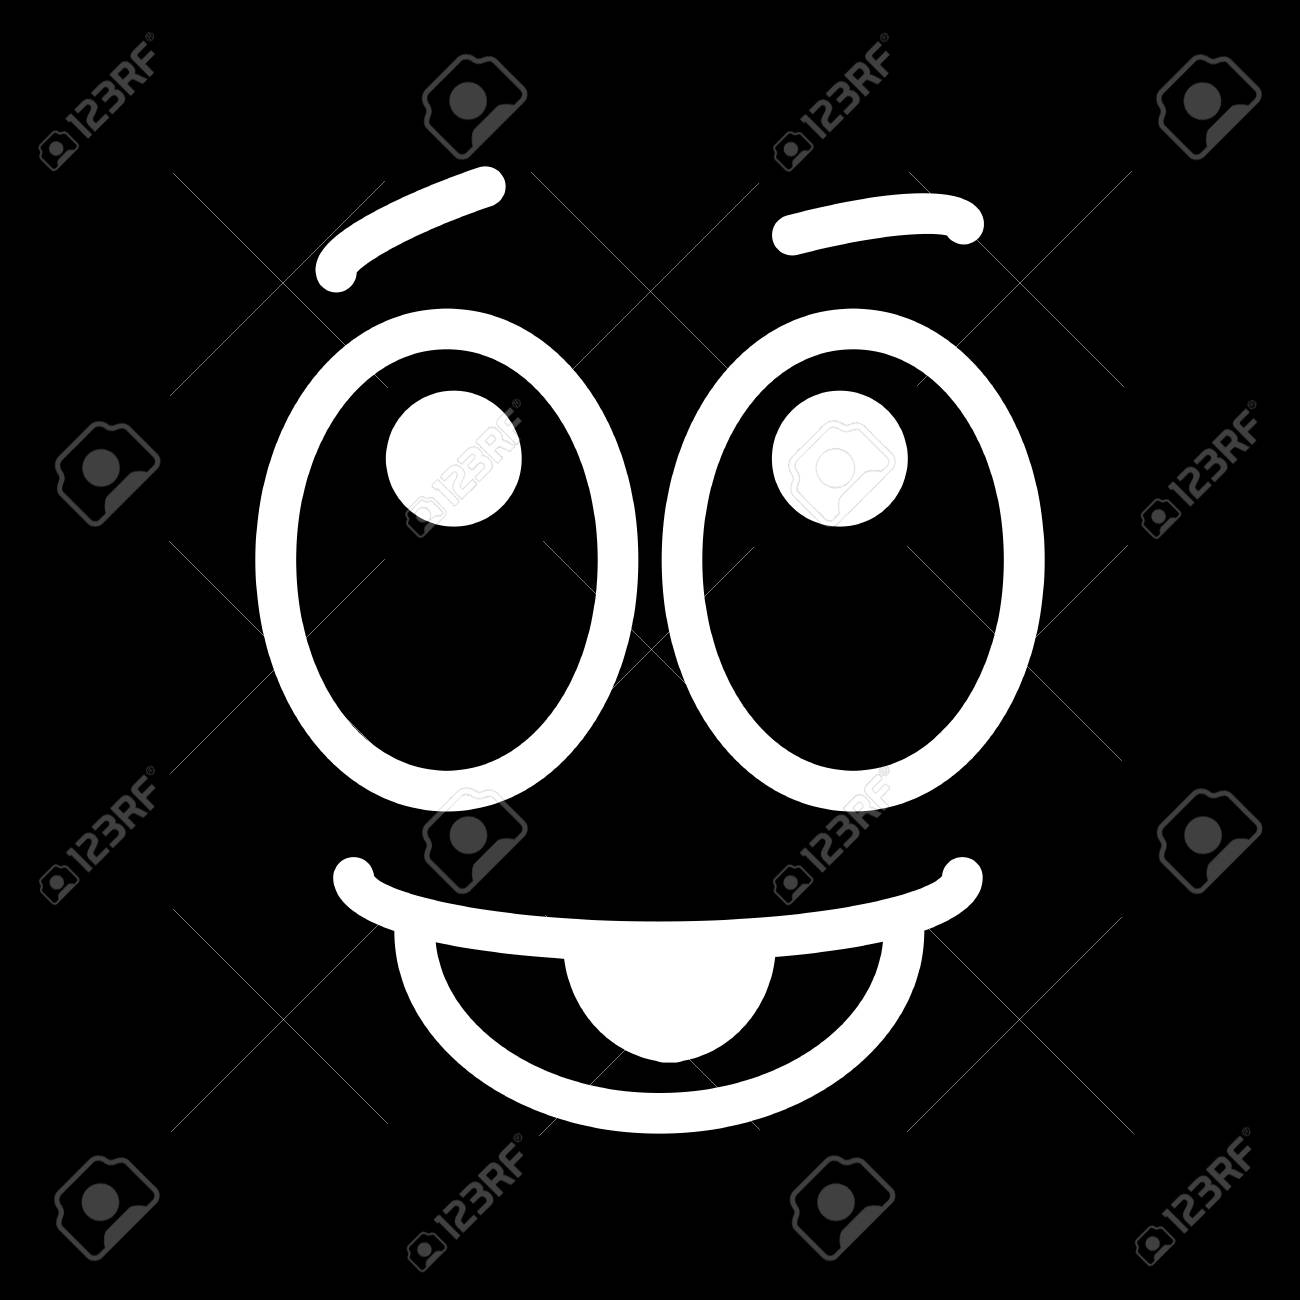 Satisfied Glad Smiley Face Emoticon Line Art Icon For Apps And